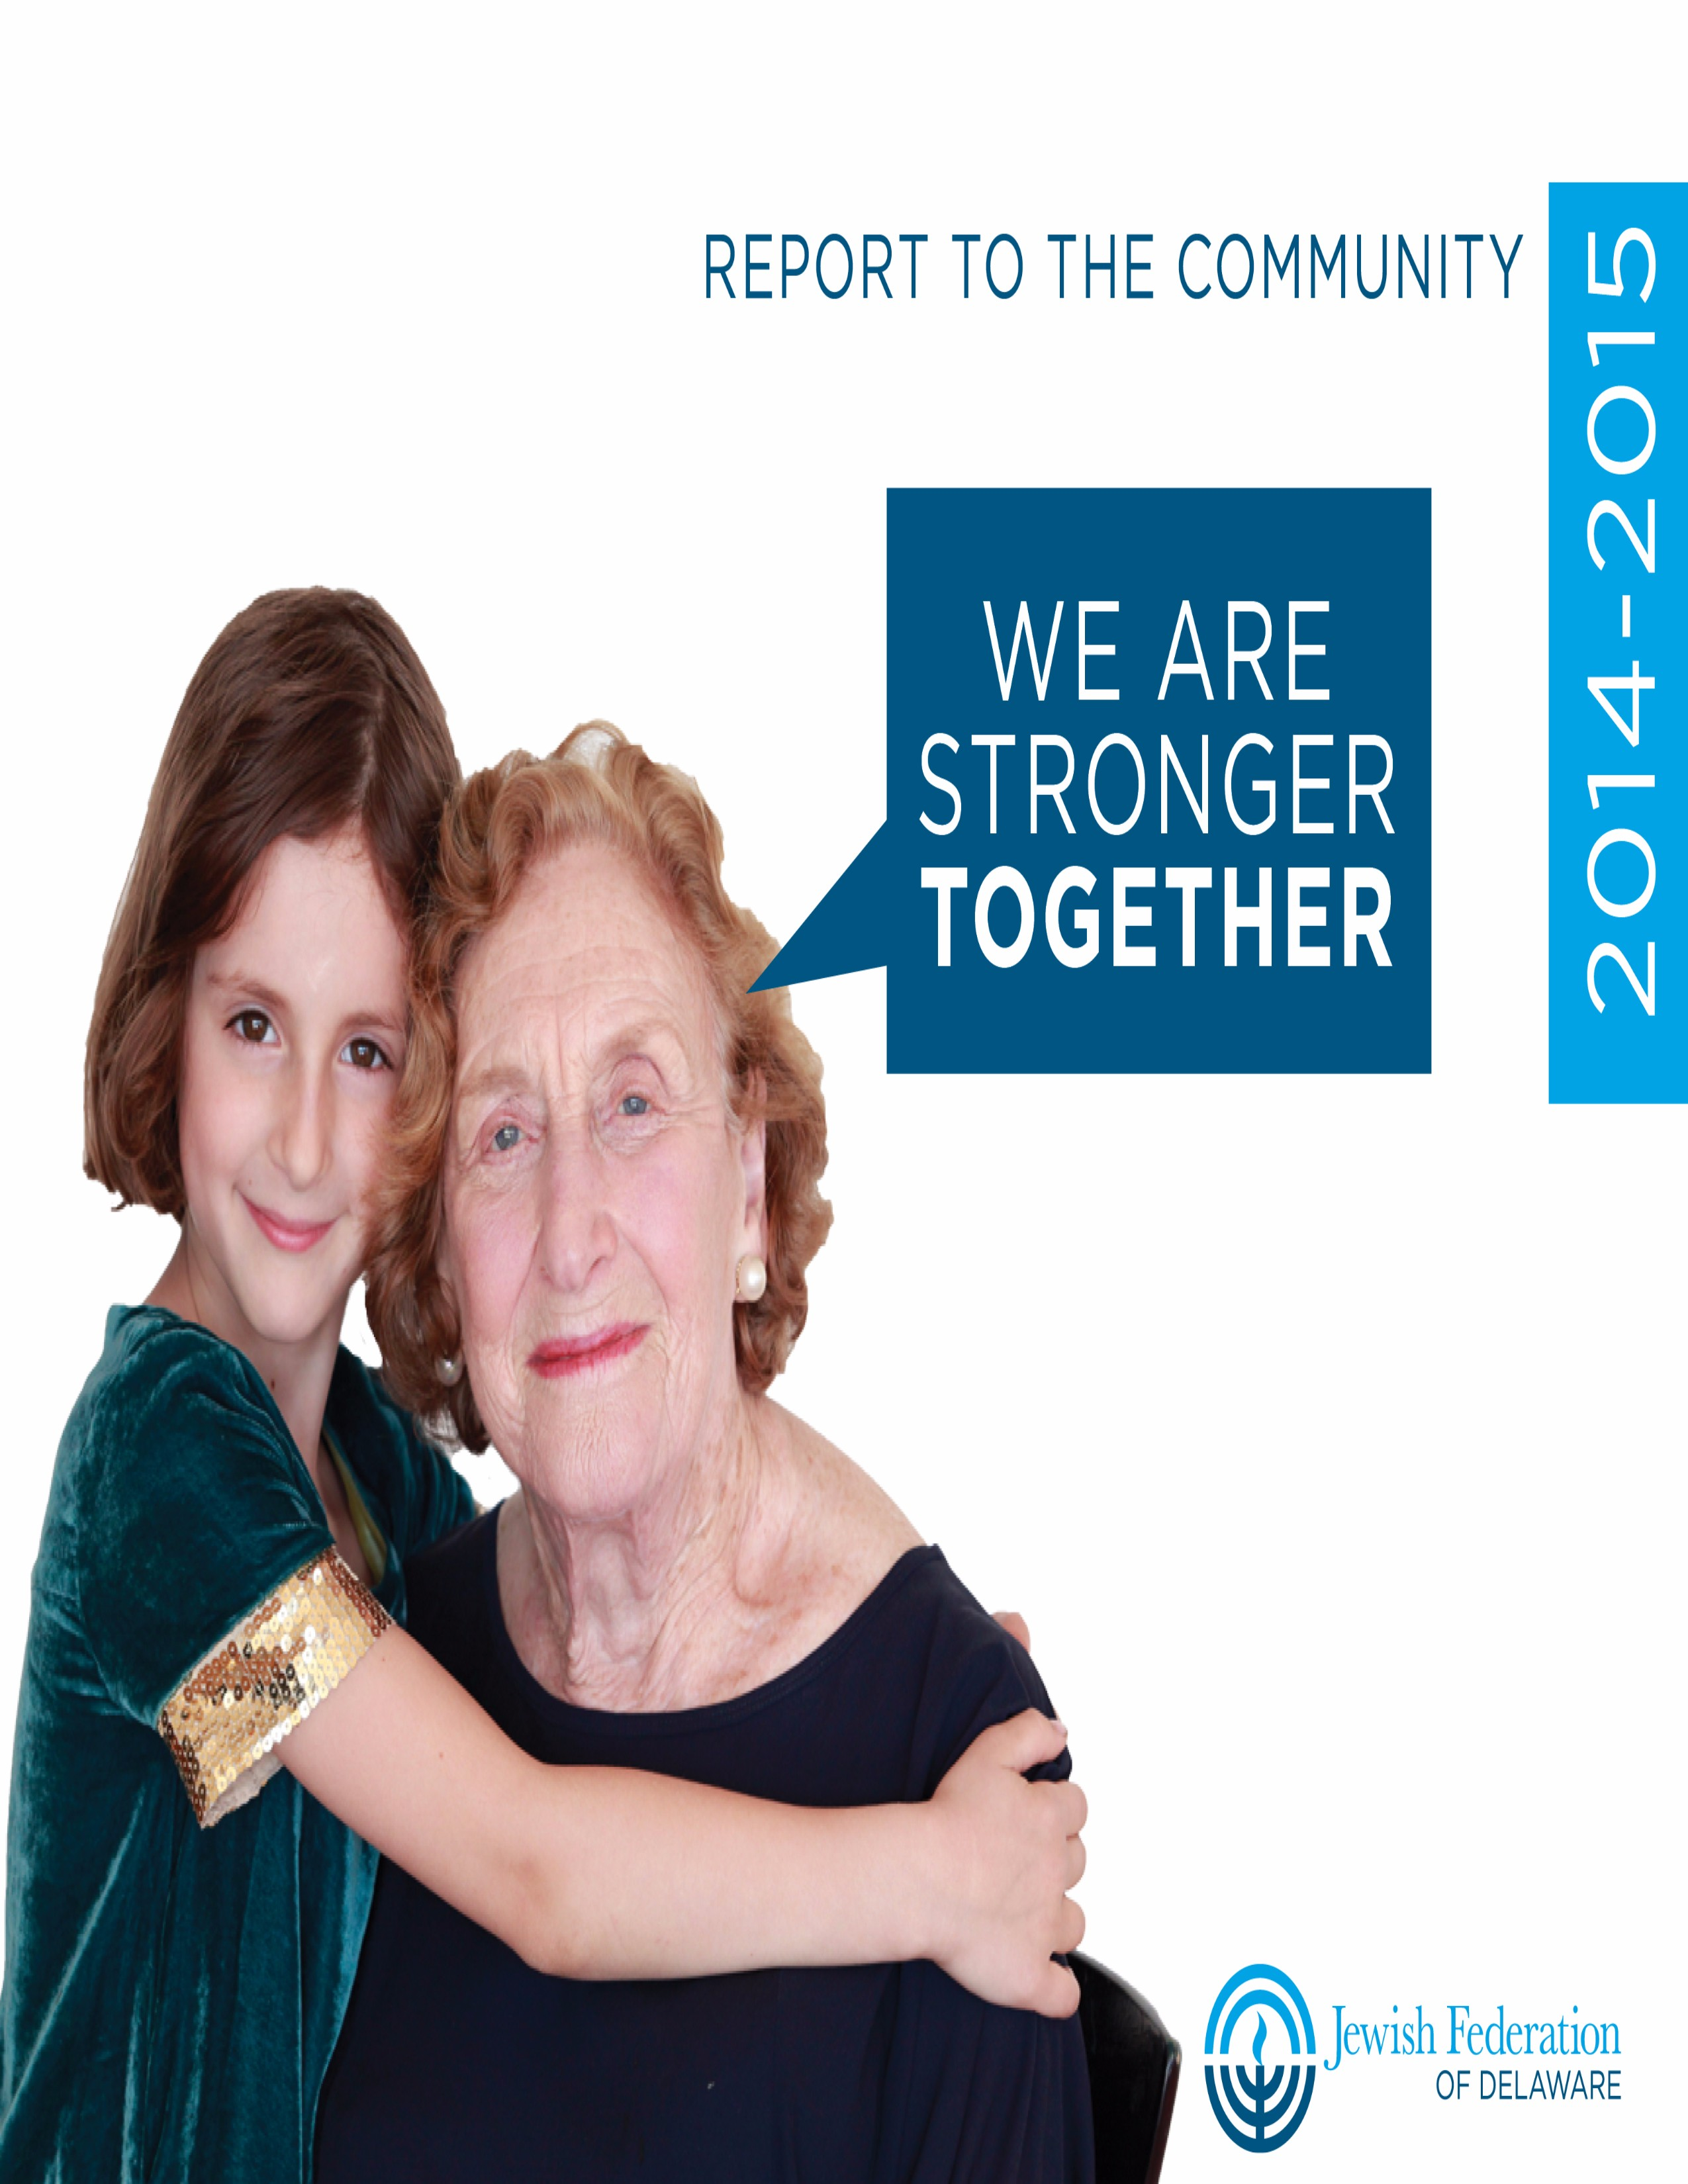 Click HERE to view the 2014-2015 Report to the Community